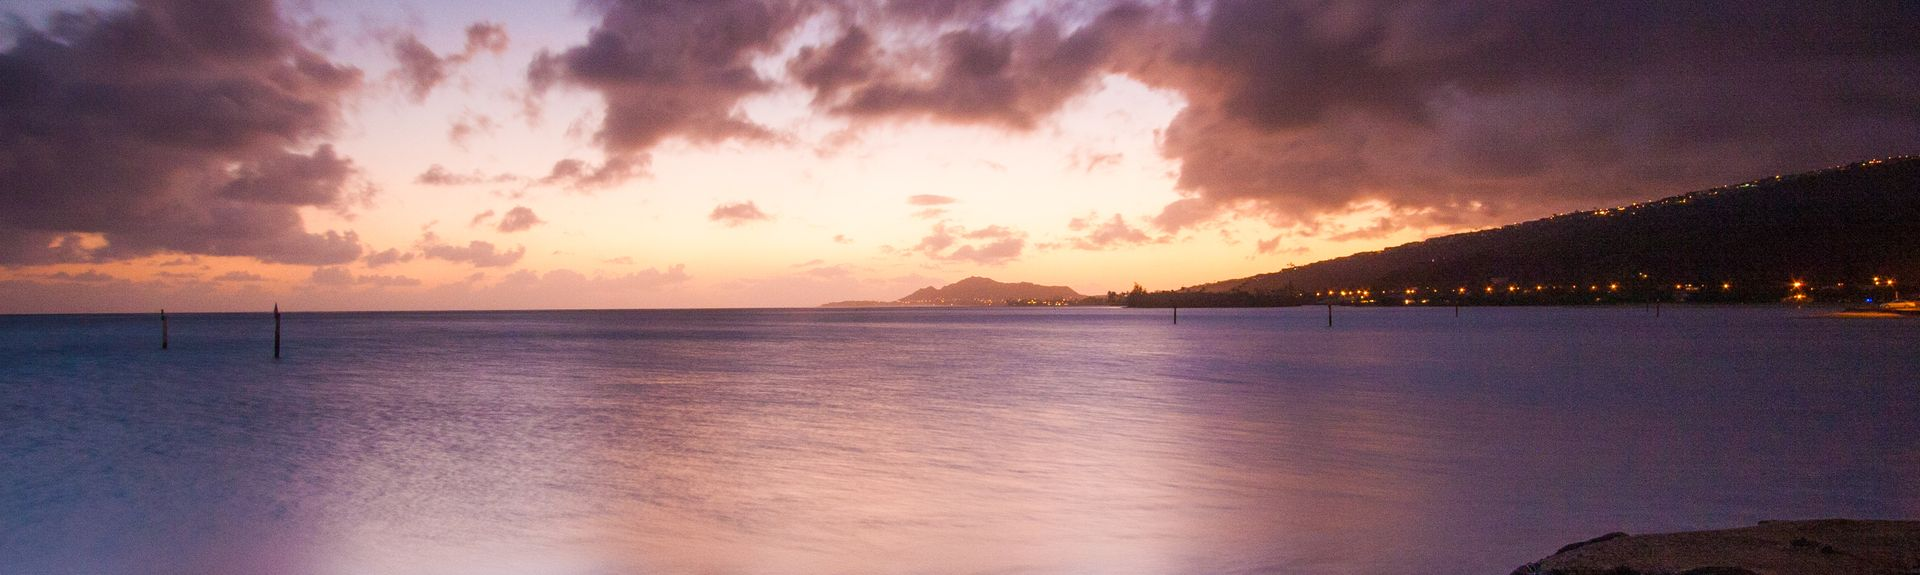 Kaimana Beach, Honolulu, Hawaii, United States